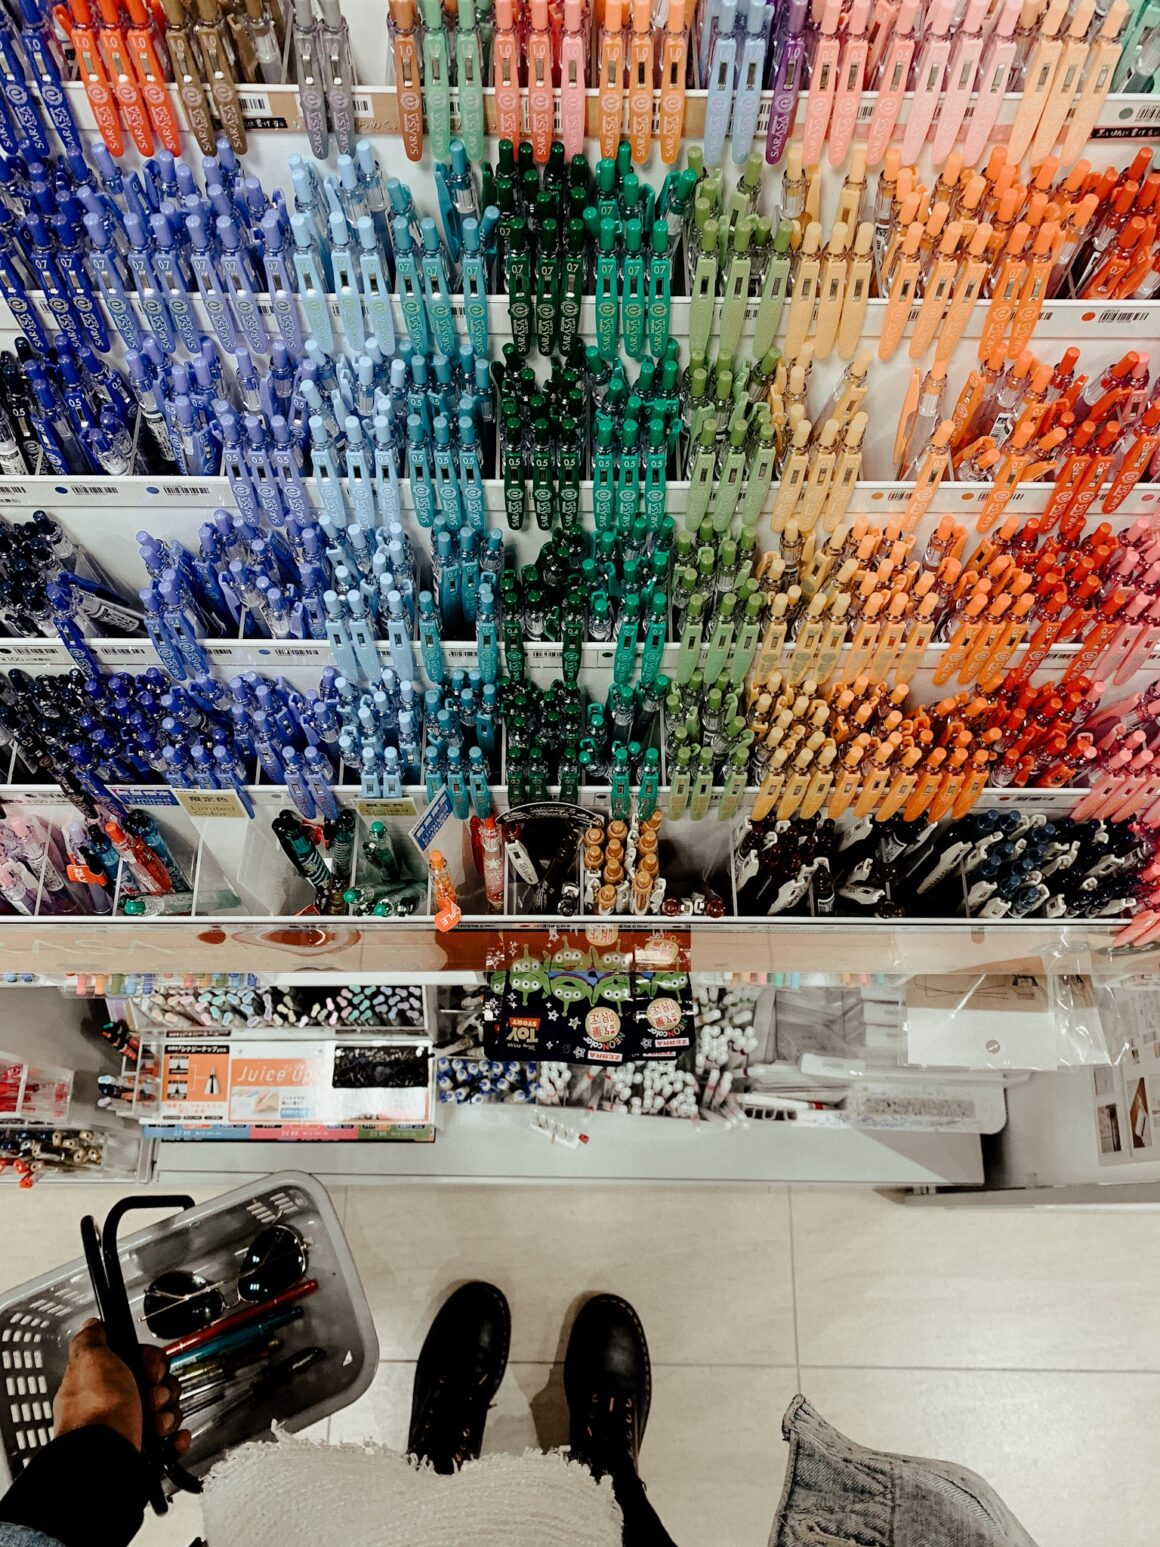 pen heaven. collection of pens. Japanese pens. Tokyo Pens. Standing in front of pens. Colorful pens. Tokyo Hands.